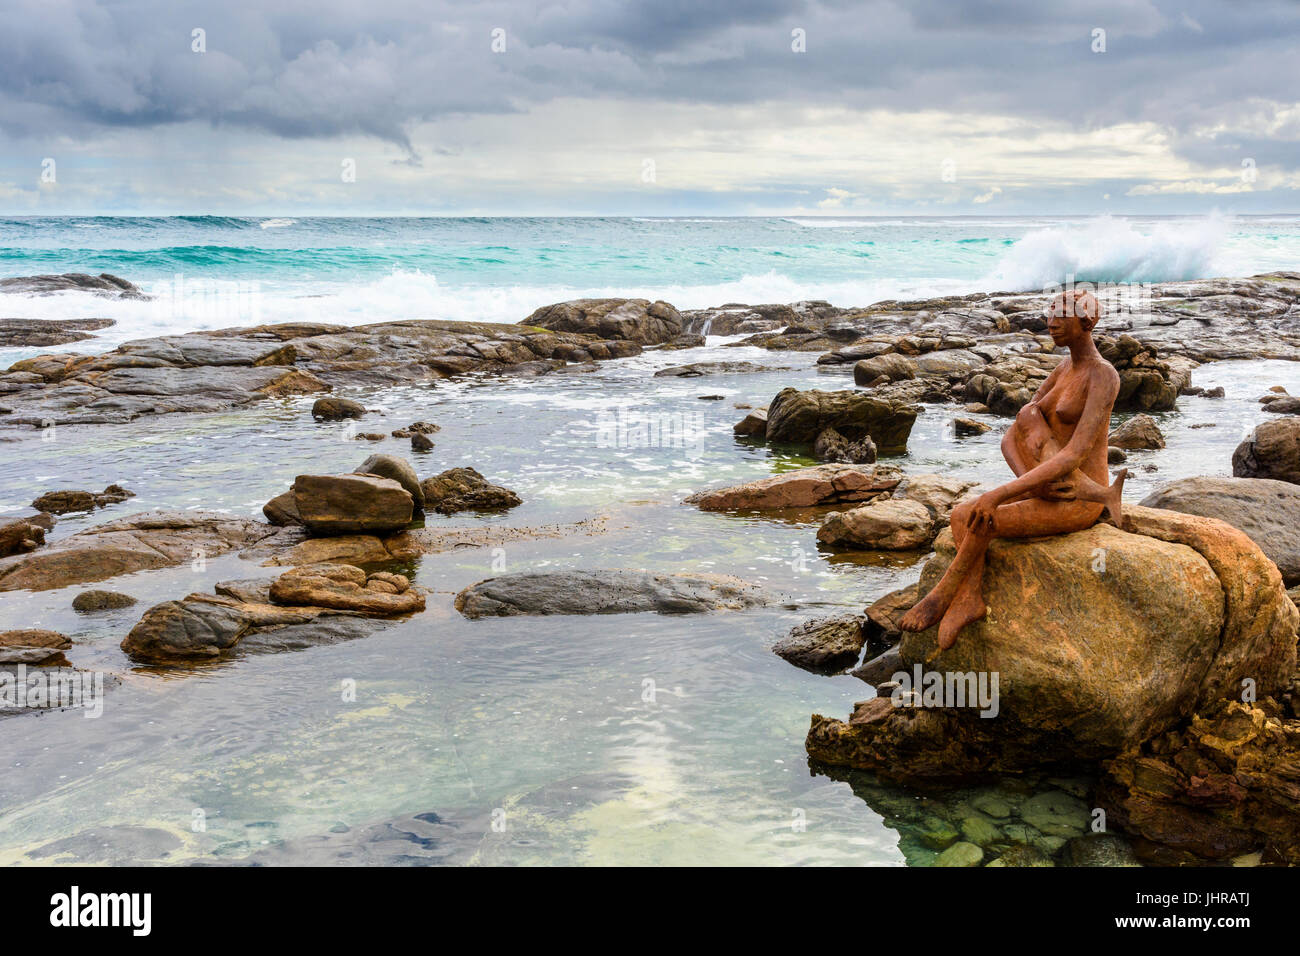 The rock pools near Margaret River river mouth with Russell Sheridan's Layla public art sculpture on a rock, Prevelly, - Stock Image